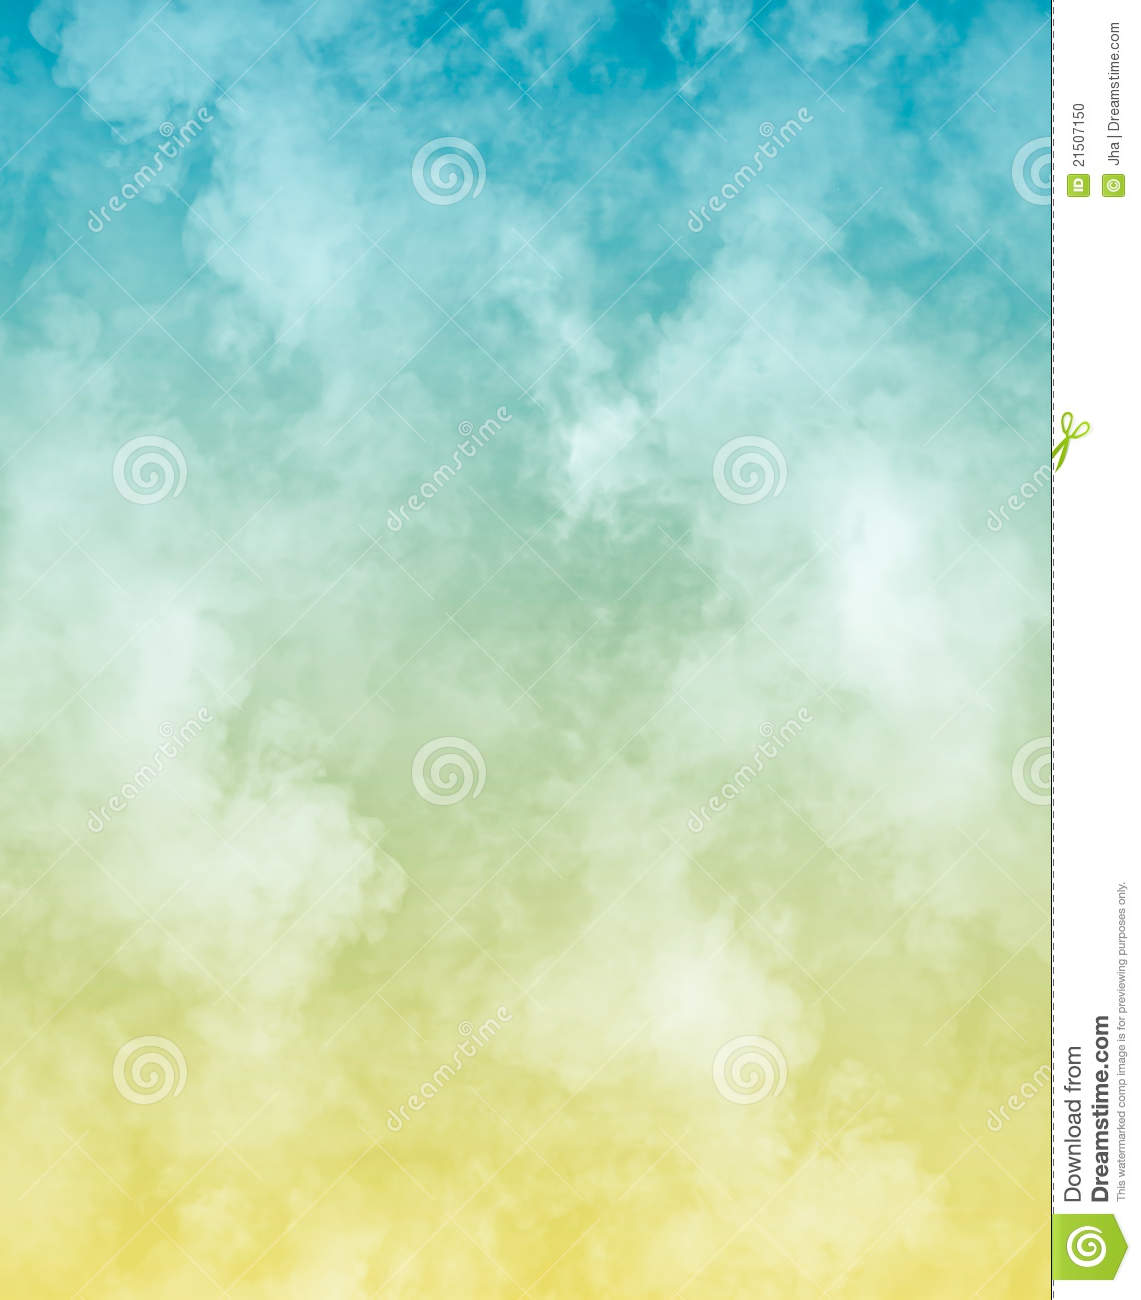 Dreamy clouds stock photo. Image of grunge, texture, paint ...